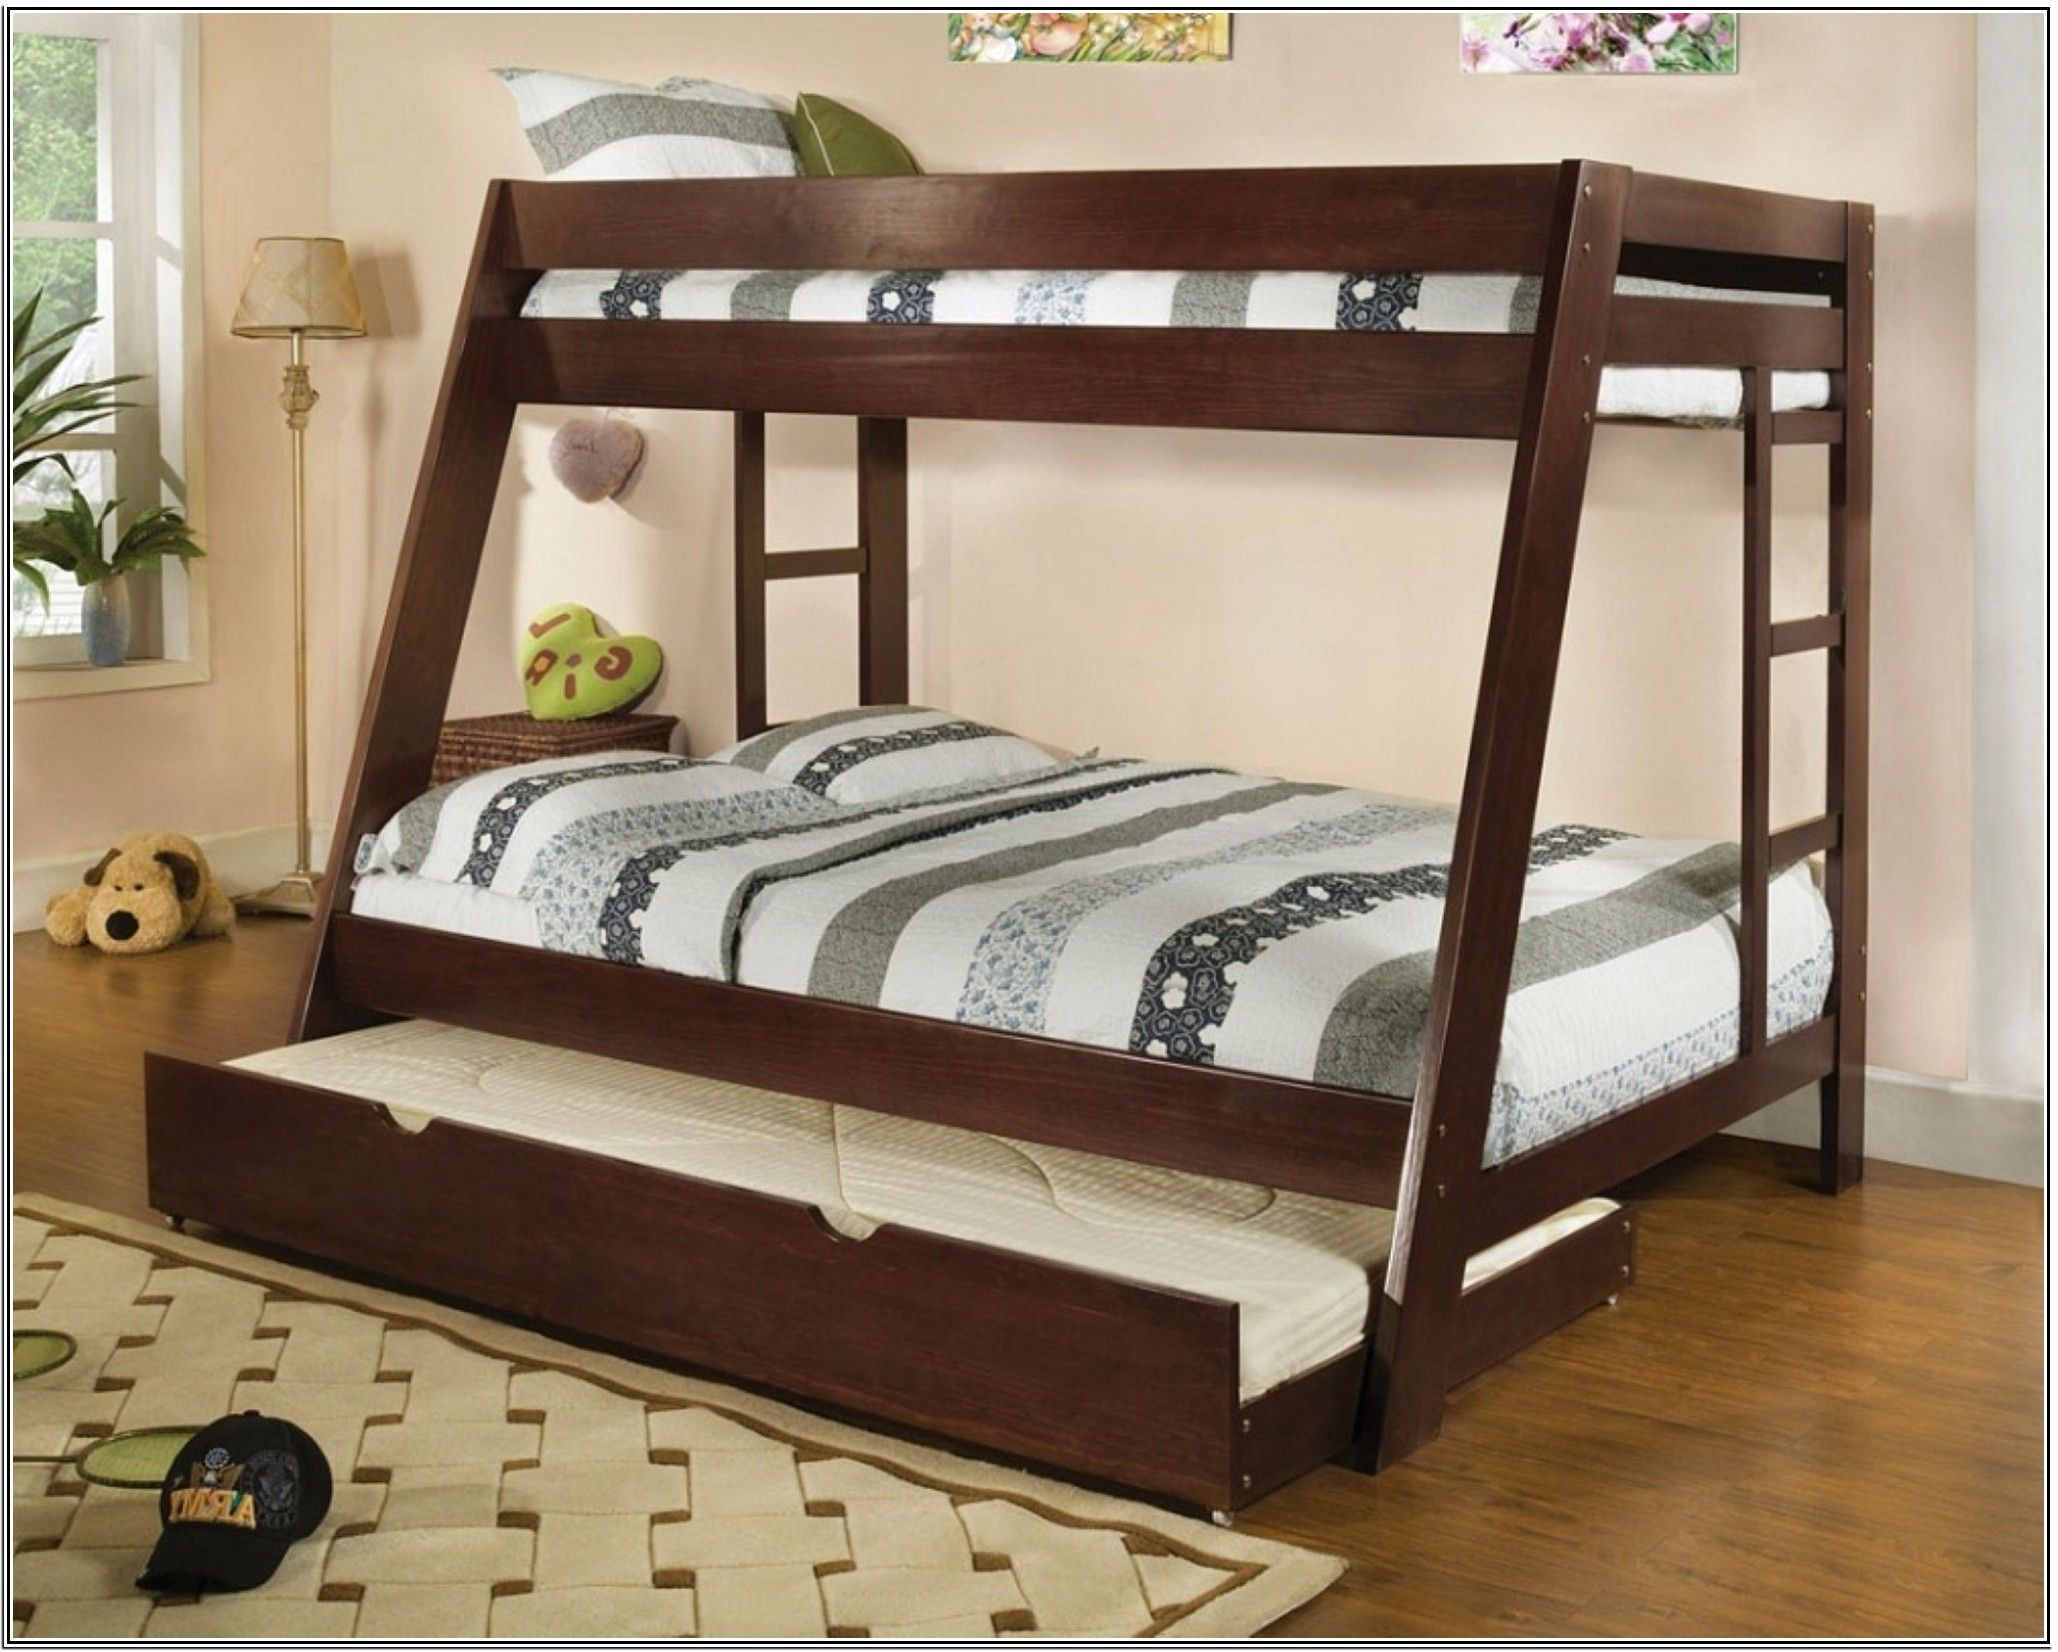 wood double deck bed designs for boys in navy blue bedroom home of